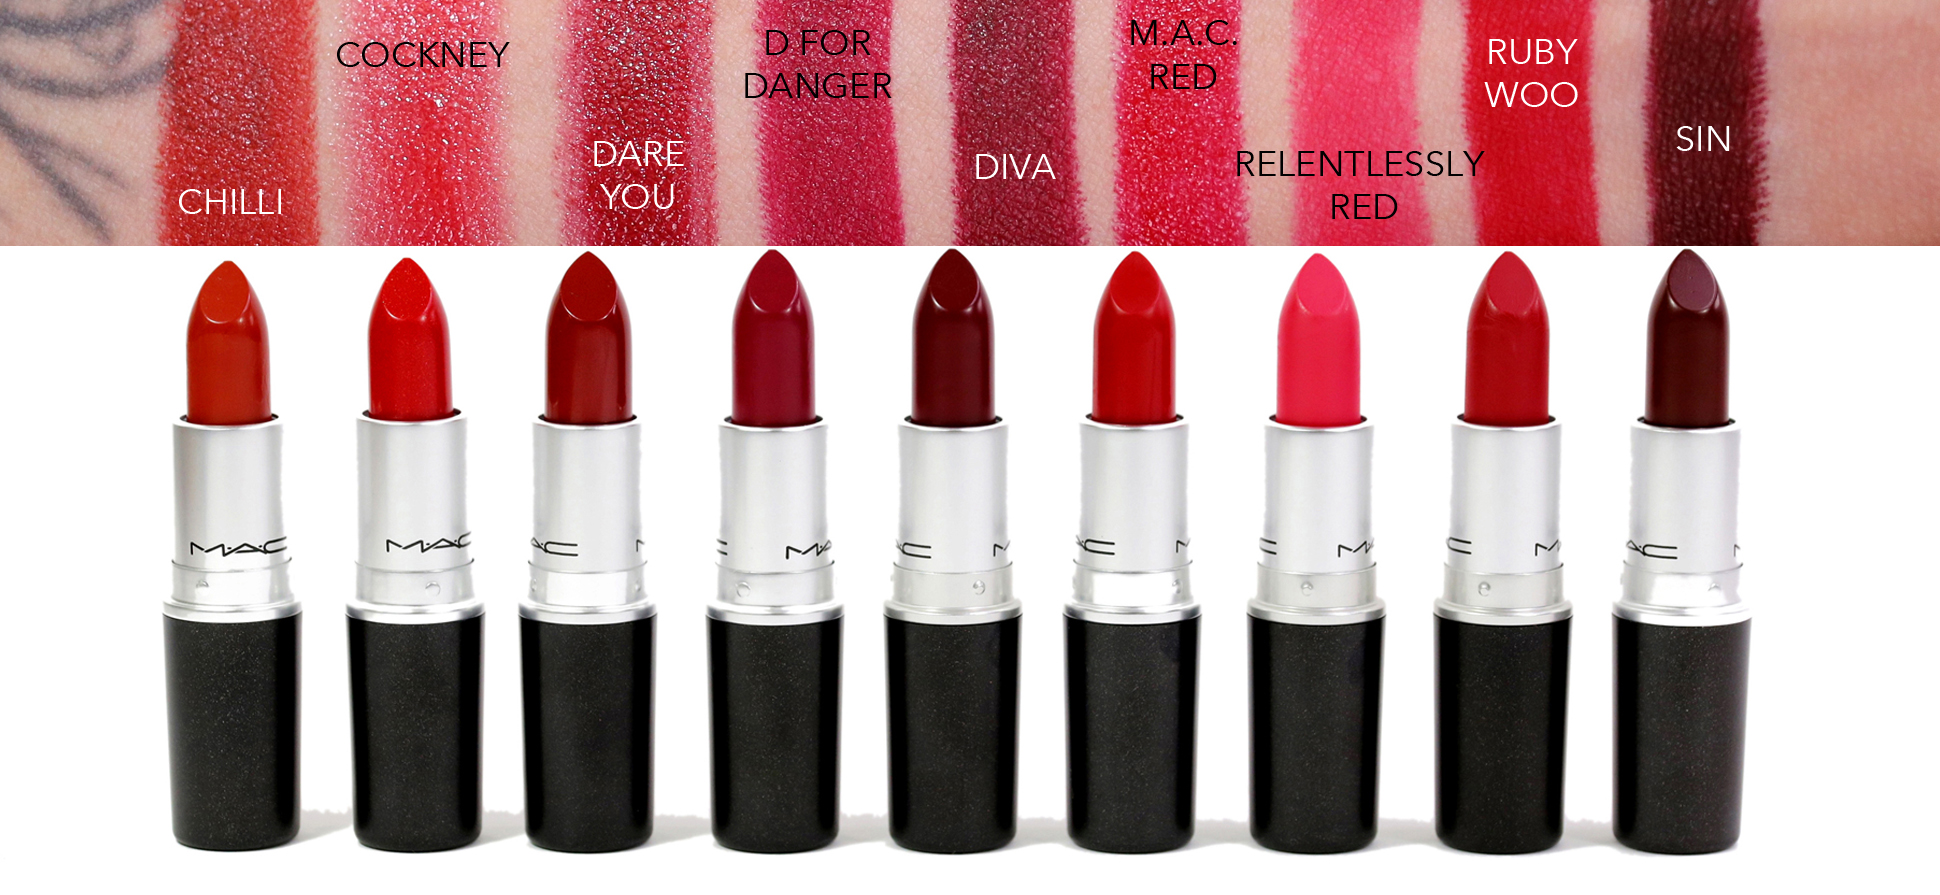 MAC's most iconic lipsticks - LIPSICK.ME - a lipstick beauty blog_2431.jpg